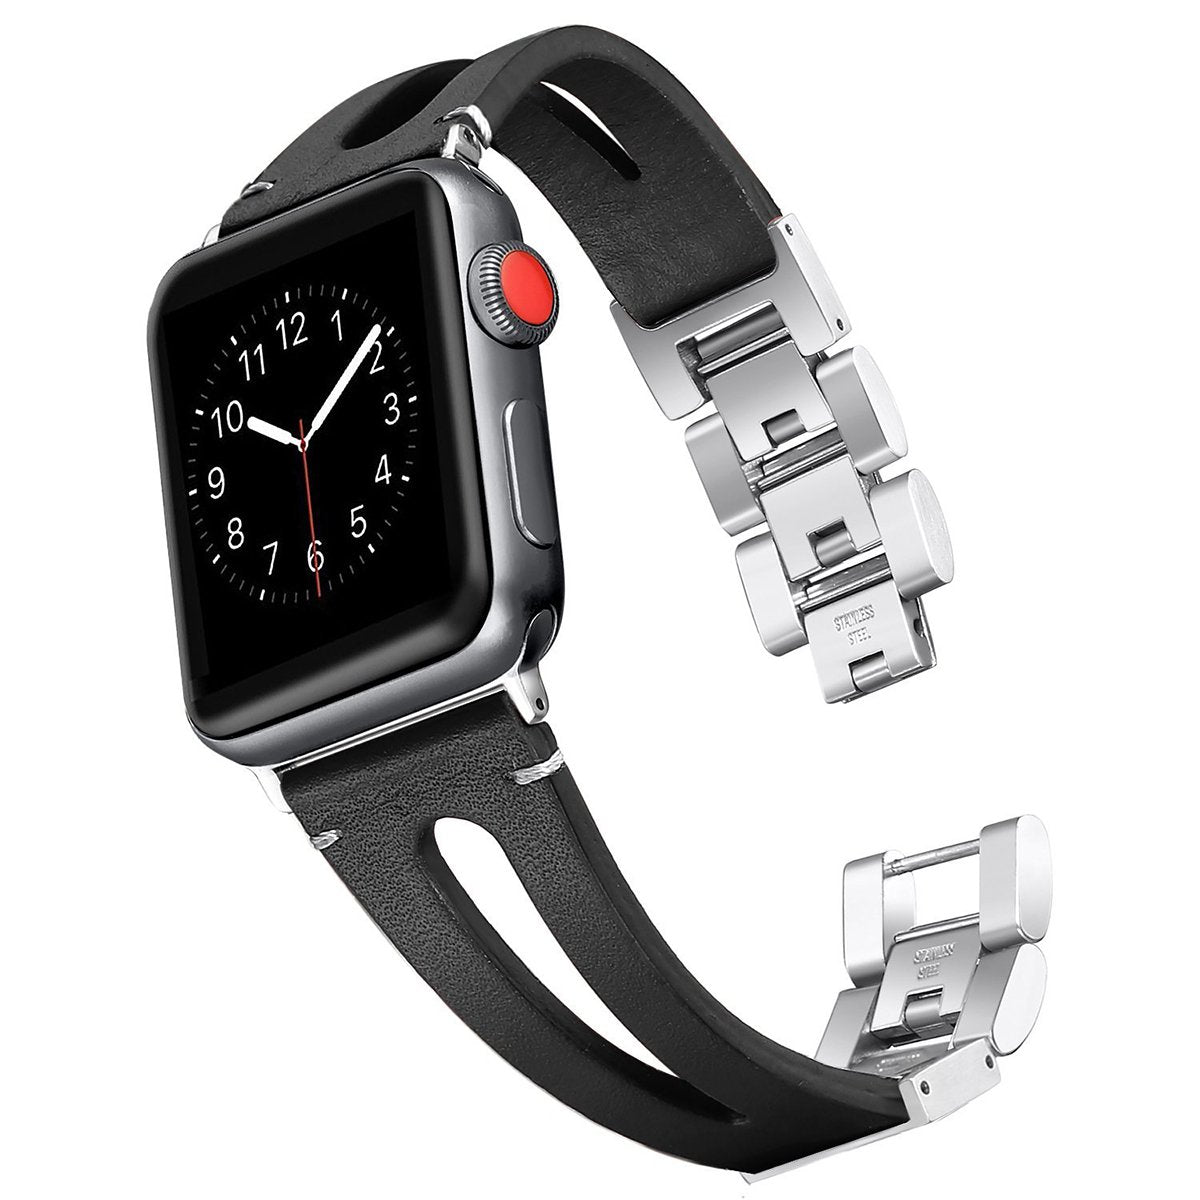 Genuine Calf Leather Apple Watch Bands 38mm/42mm/40m/44mm - iWatch Band Series 4 3 2 1 - Black / 38mm-40mm - Watchbands